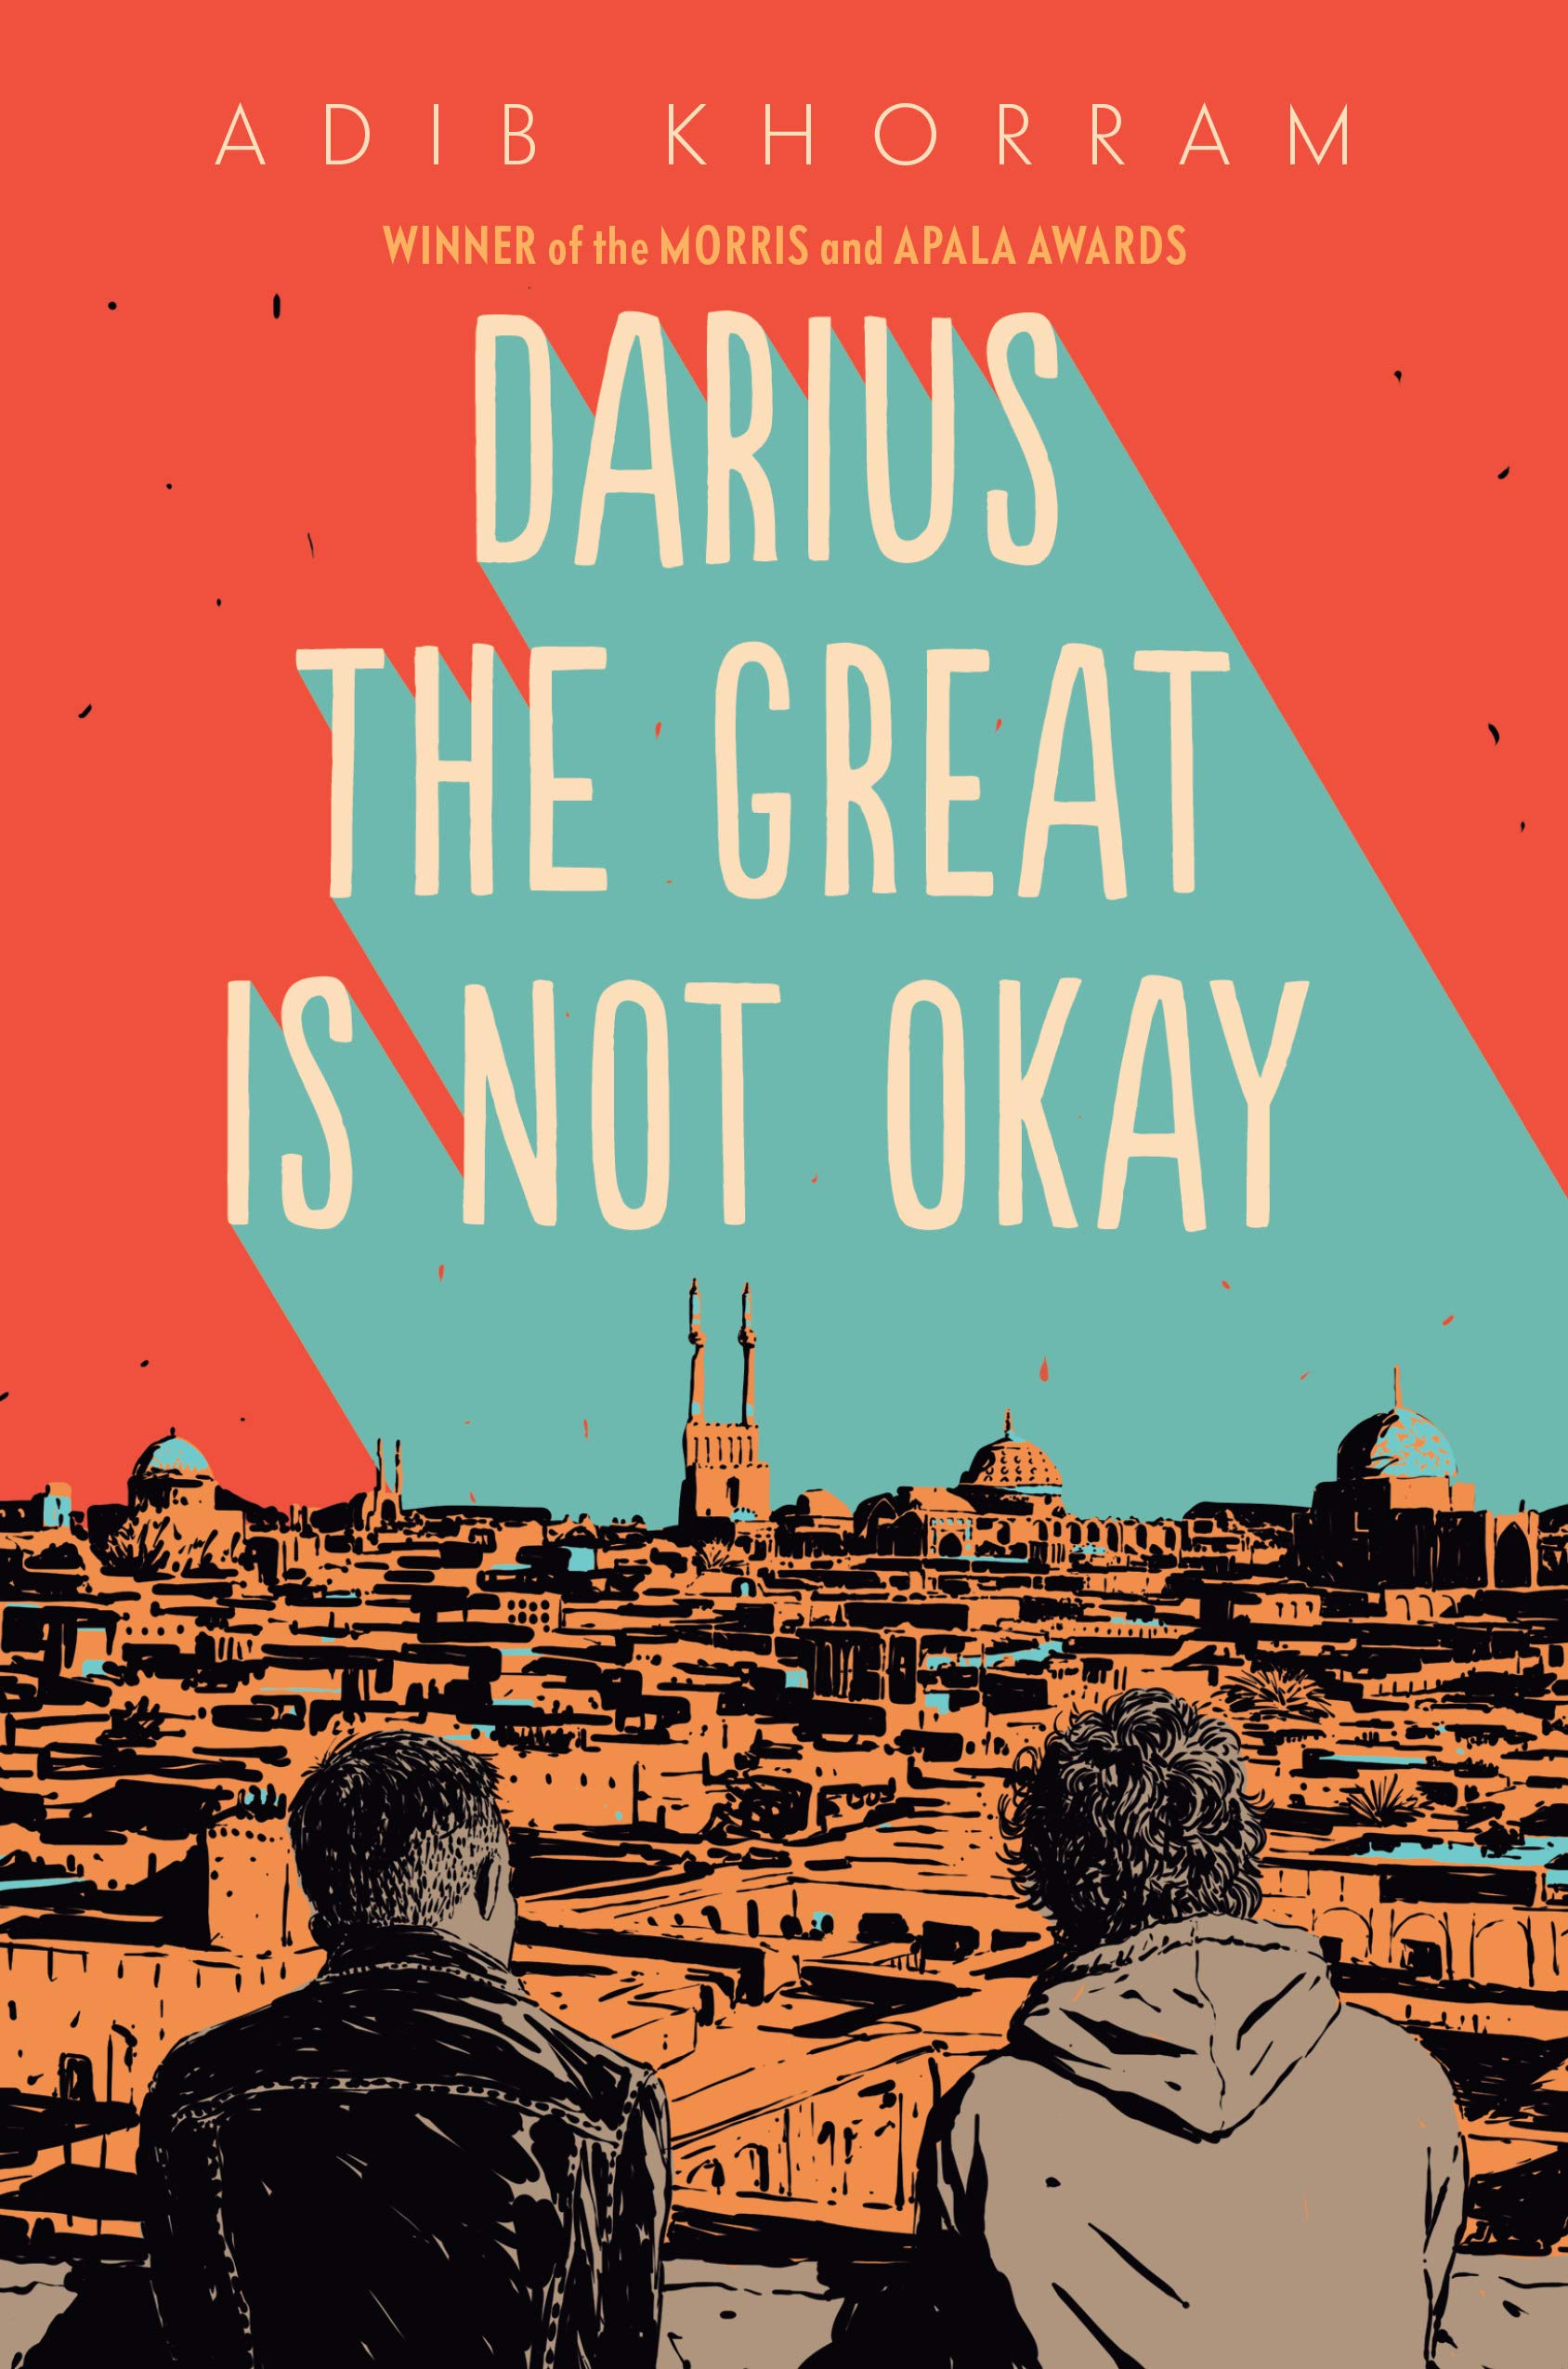 HBOB Darius the Great is Not Ok